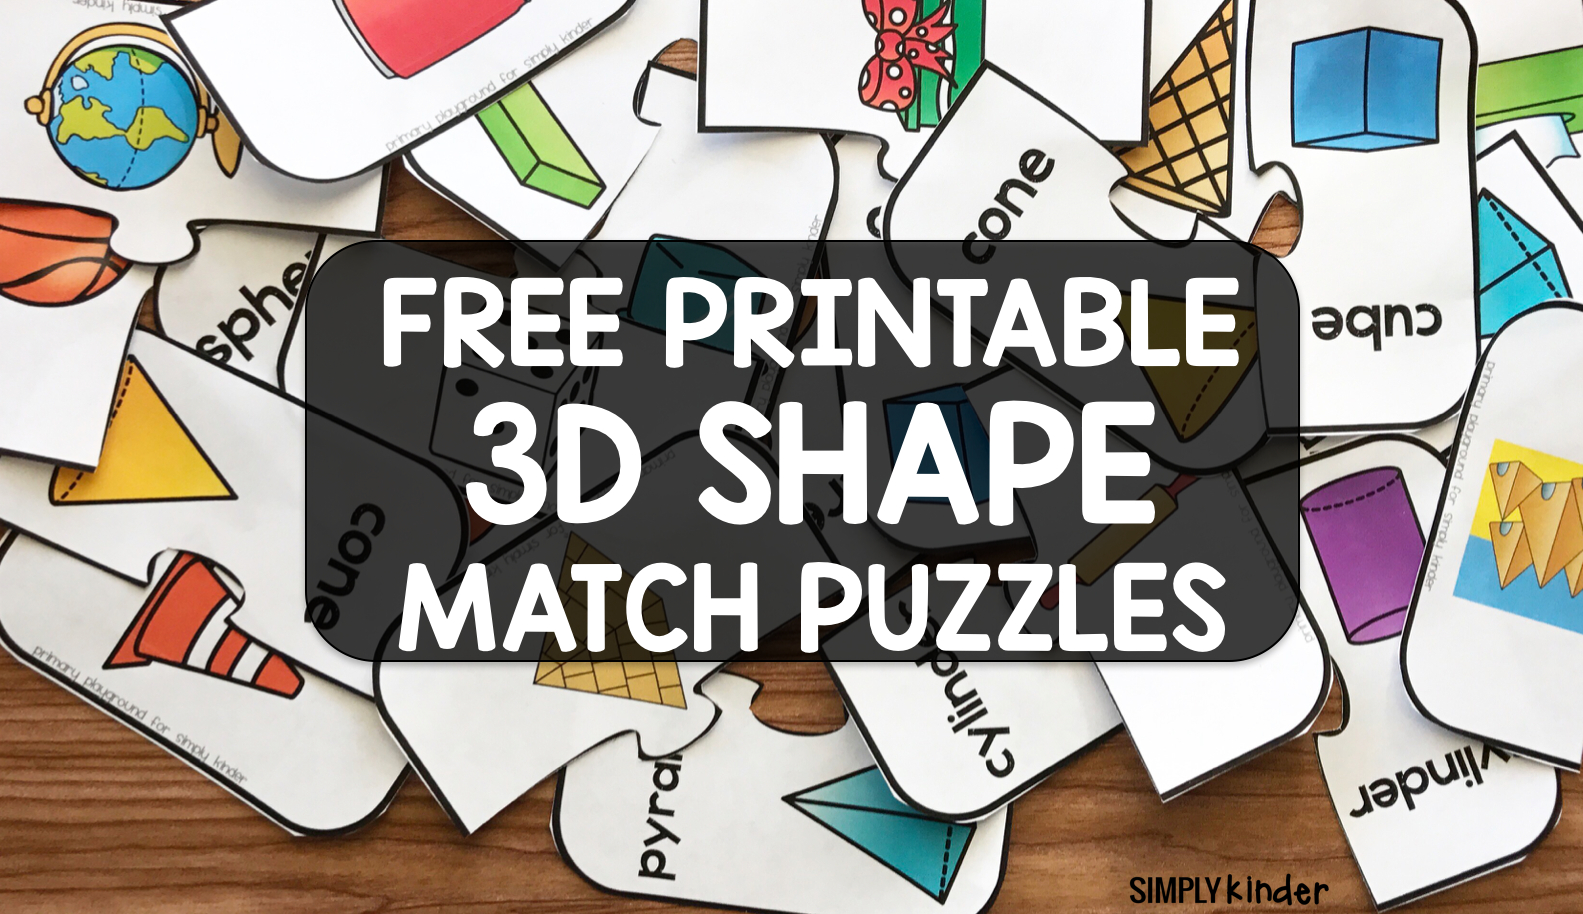 Free Printable 3D Shape Puzzles - Simply Kinder - Printable 3D Puzzles